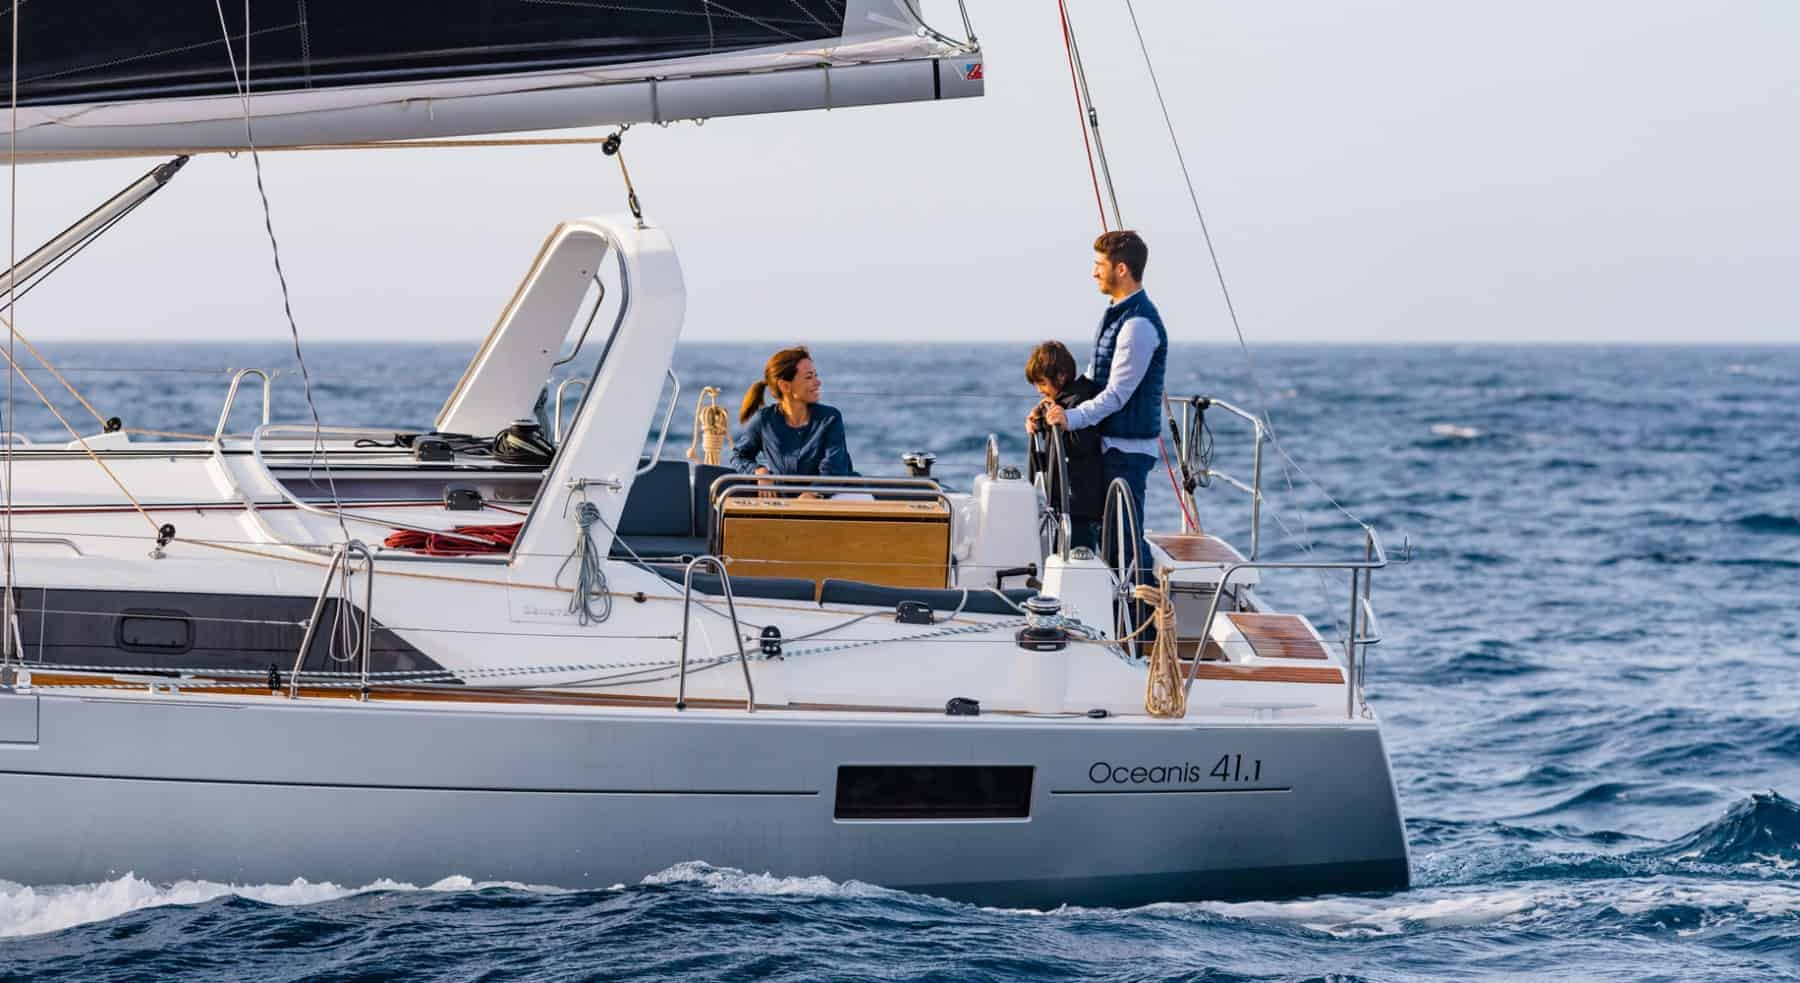 Family enjoying the Benteteau Oceanis 44.1 while sailing through the crashin waves